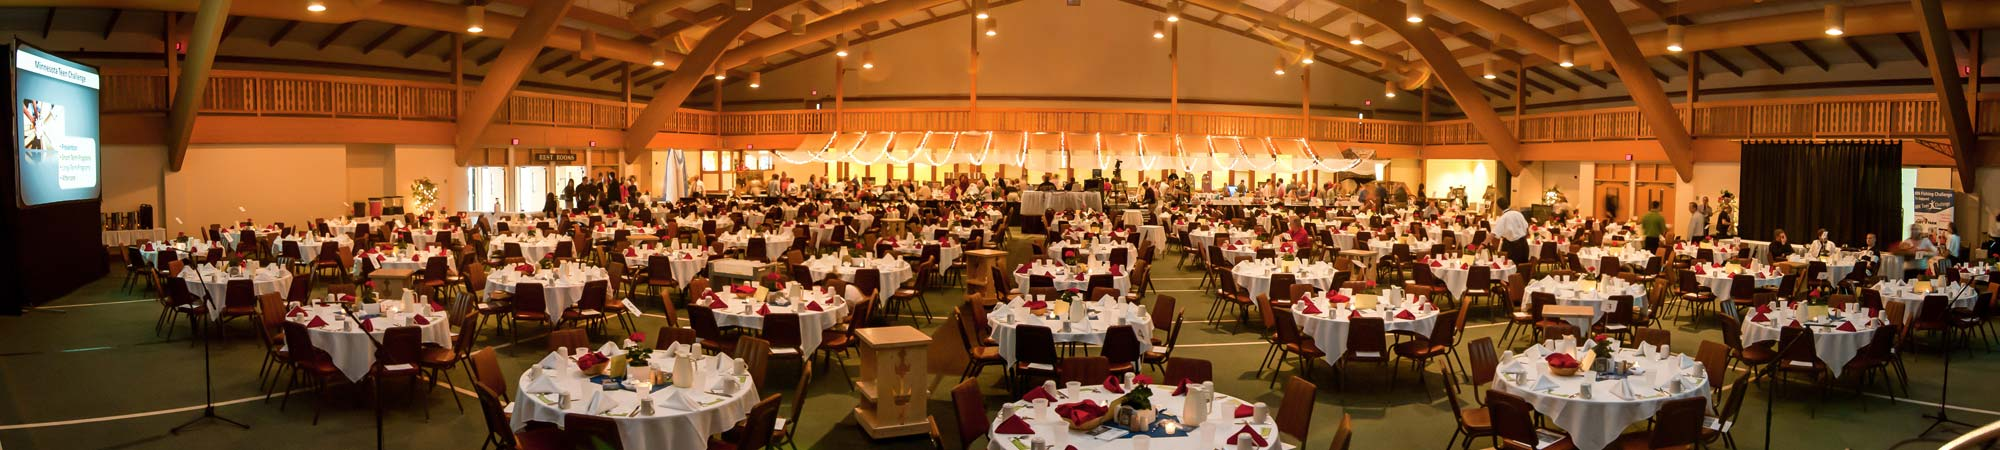 slide-meeting-banquet_2000x450